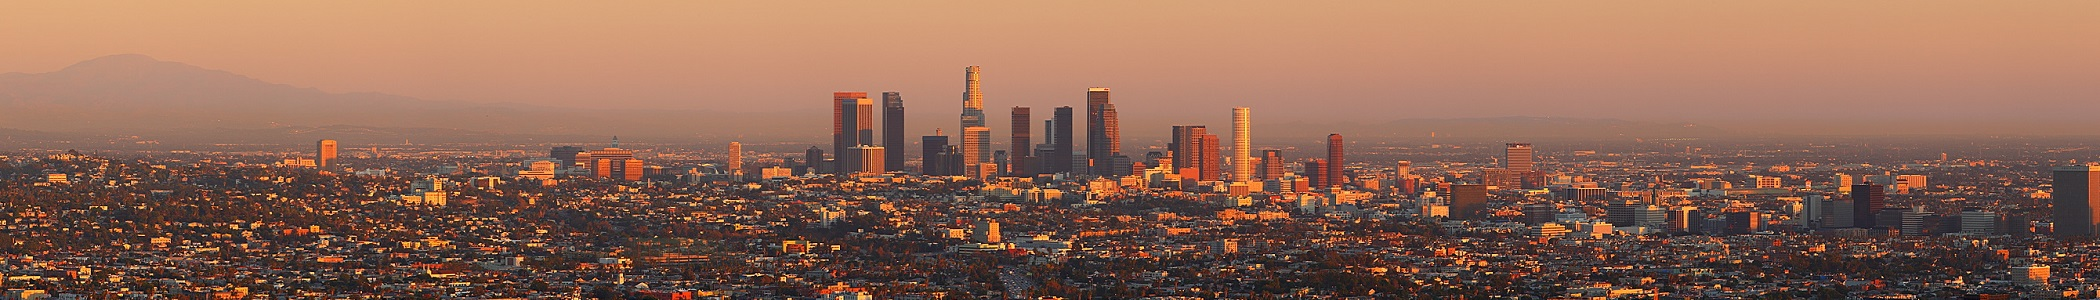 Digital Nomad city - Los Angeles